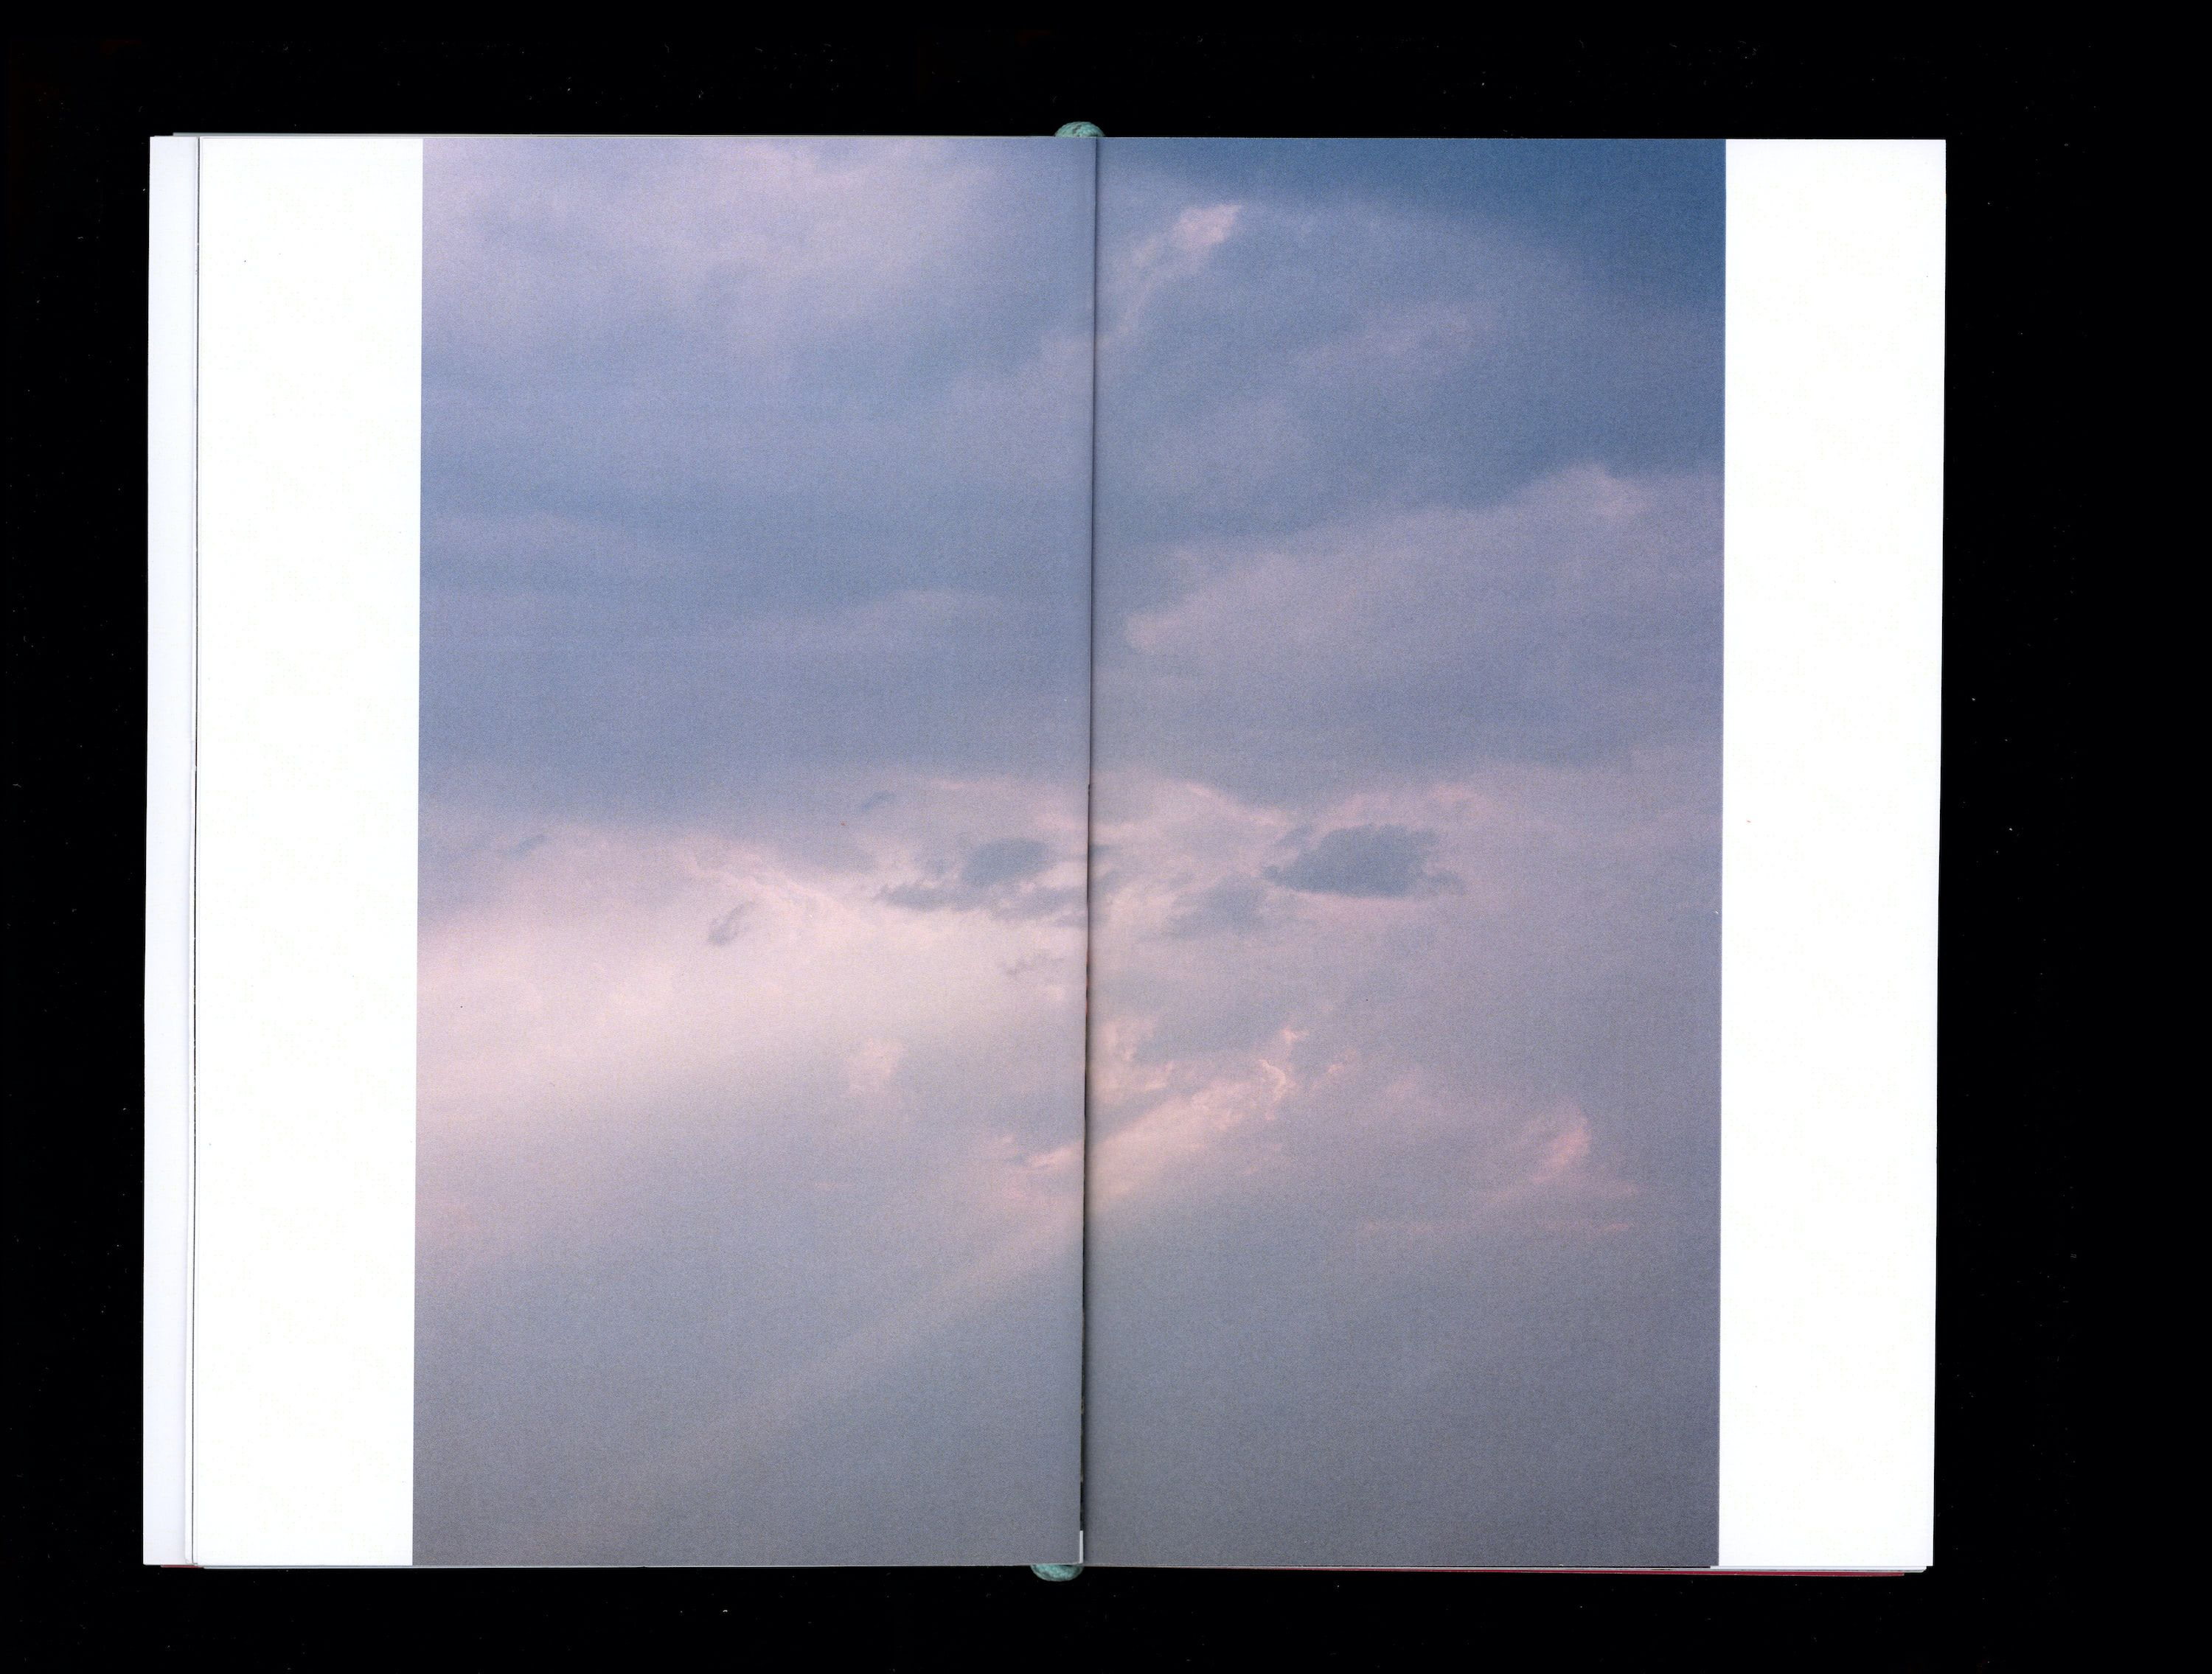 Photograph in book of grey clouds with pink sunlight shining through